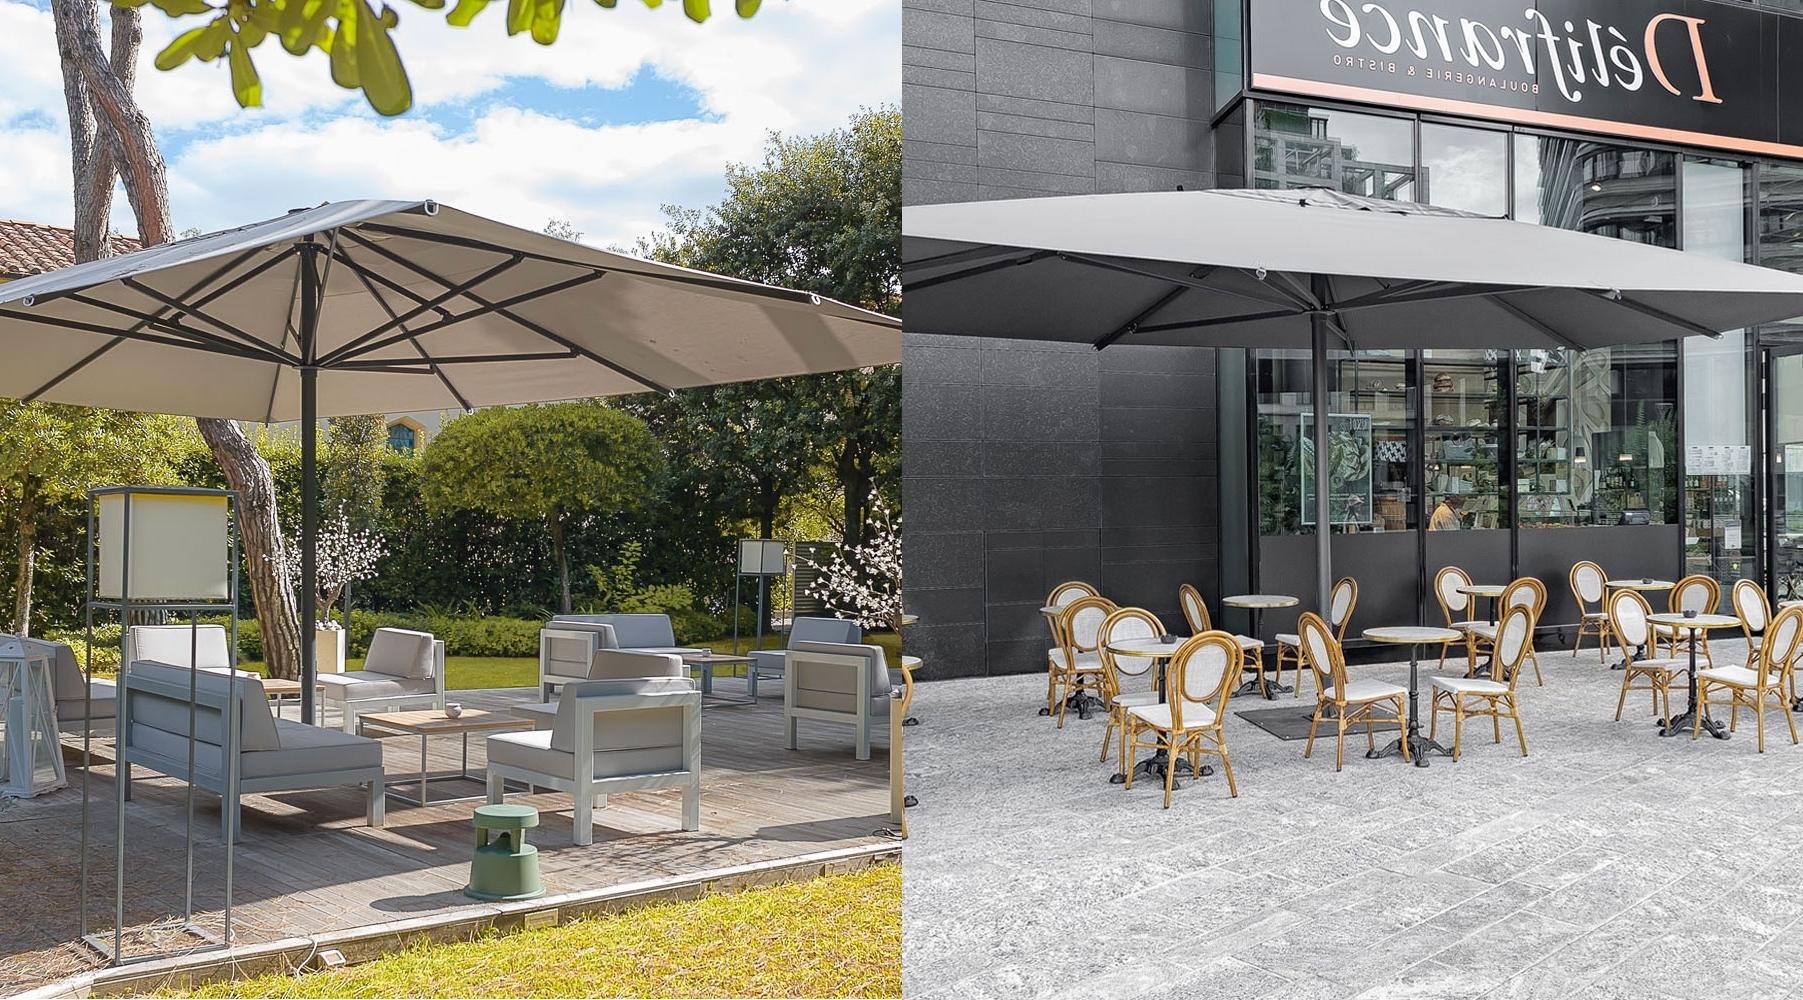 Well Liked Expensive Patio Umbrellas With The Ultimate Guide To Choosing The Best Commercial Outdoor Umbrella (View 7 of 20)